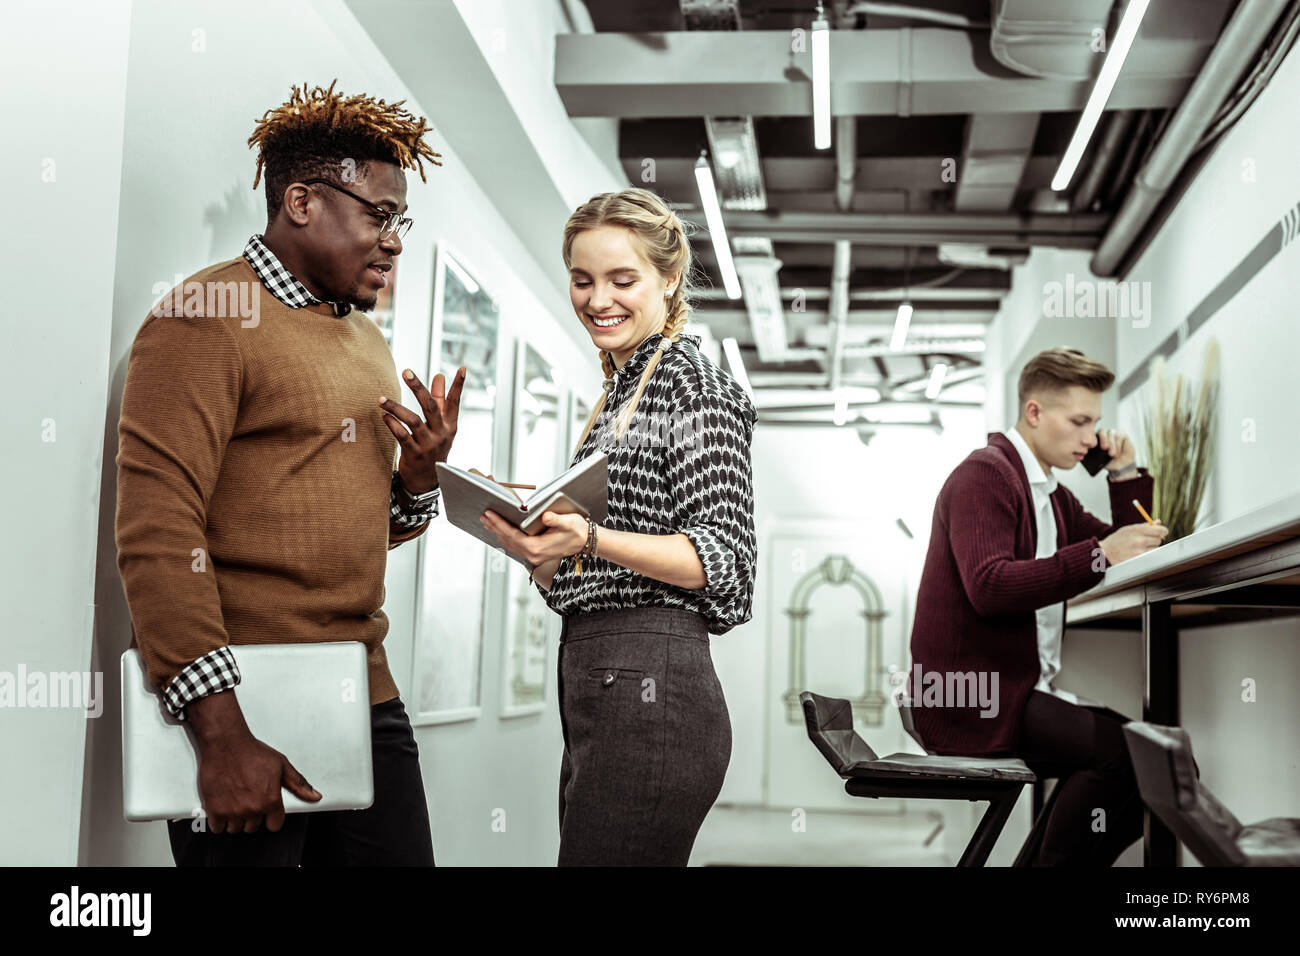 Cheerful young lady with wide smile standing with her colleague - Stock Image